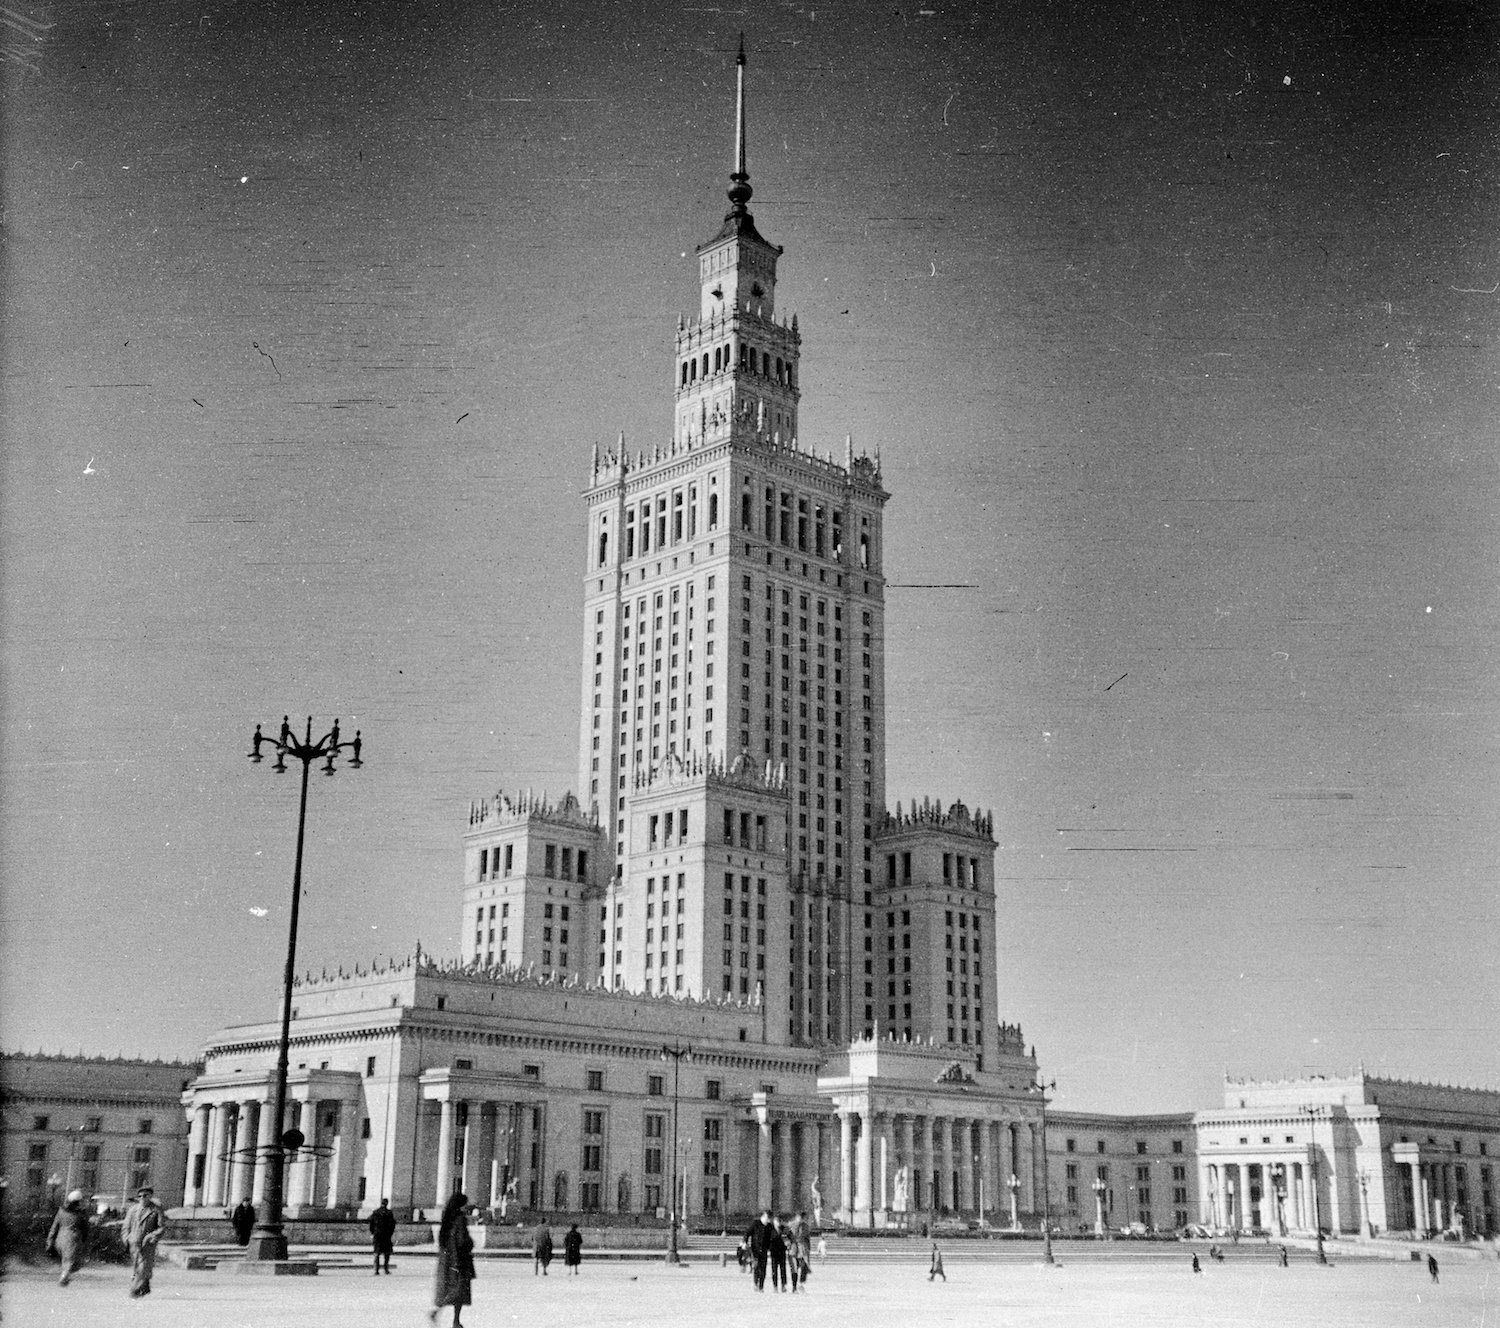 The completed Palace in 1960. Image: FORTEPAN/Romák_Éva under a CC licence